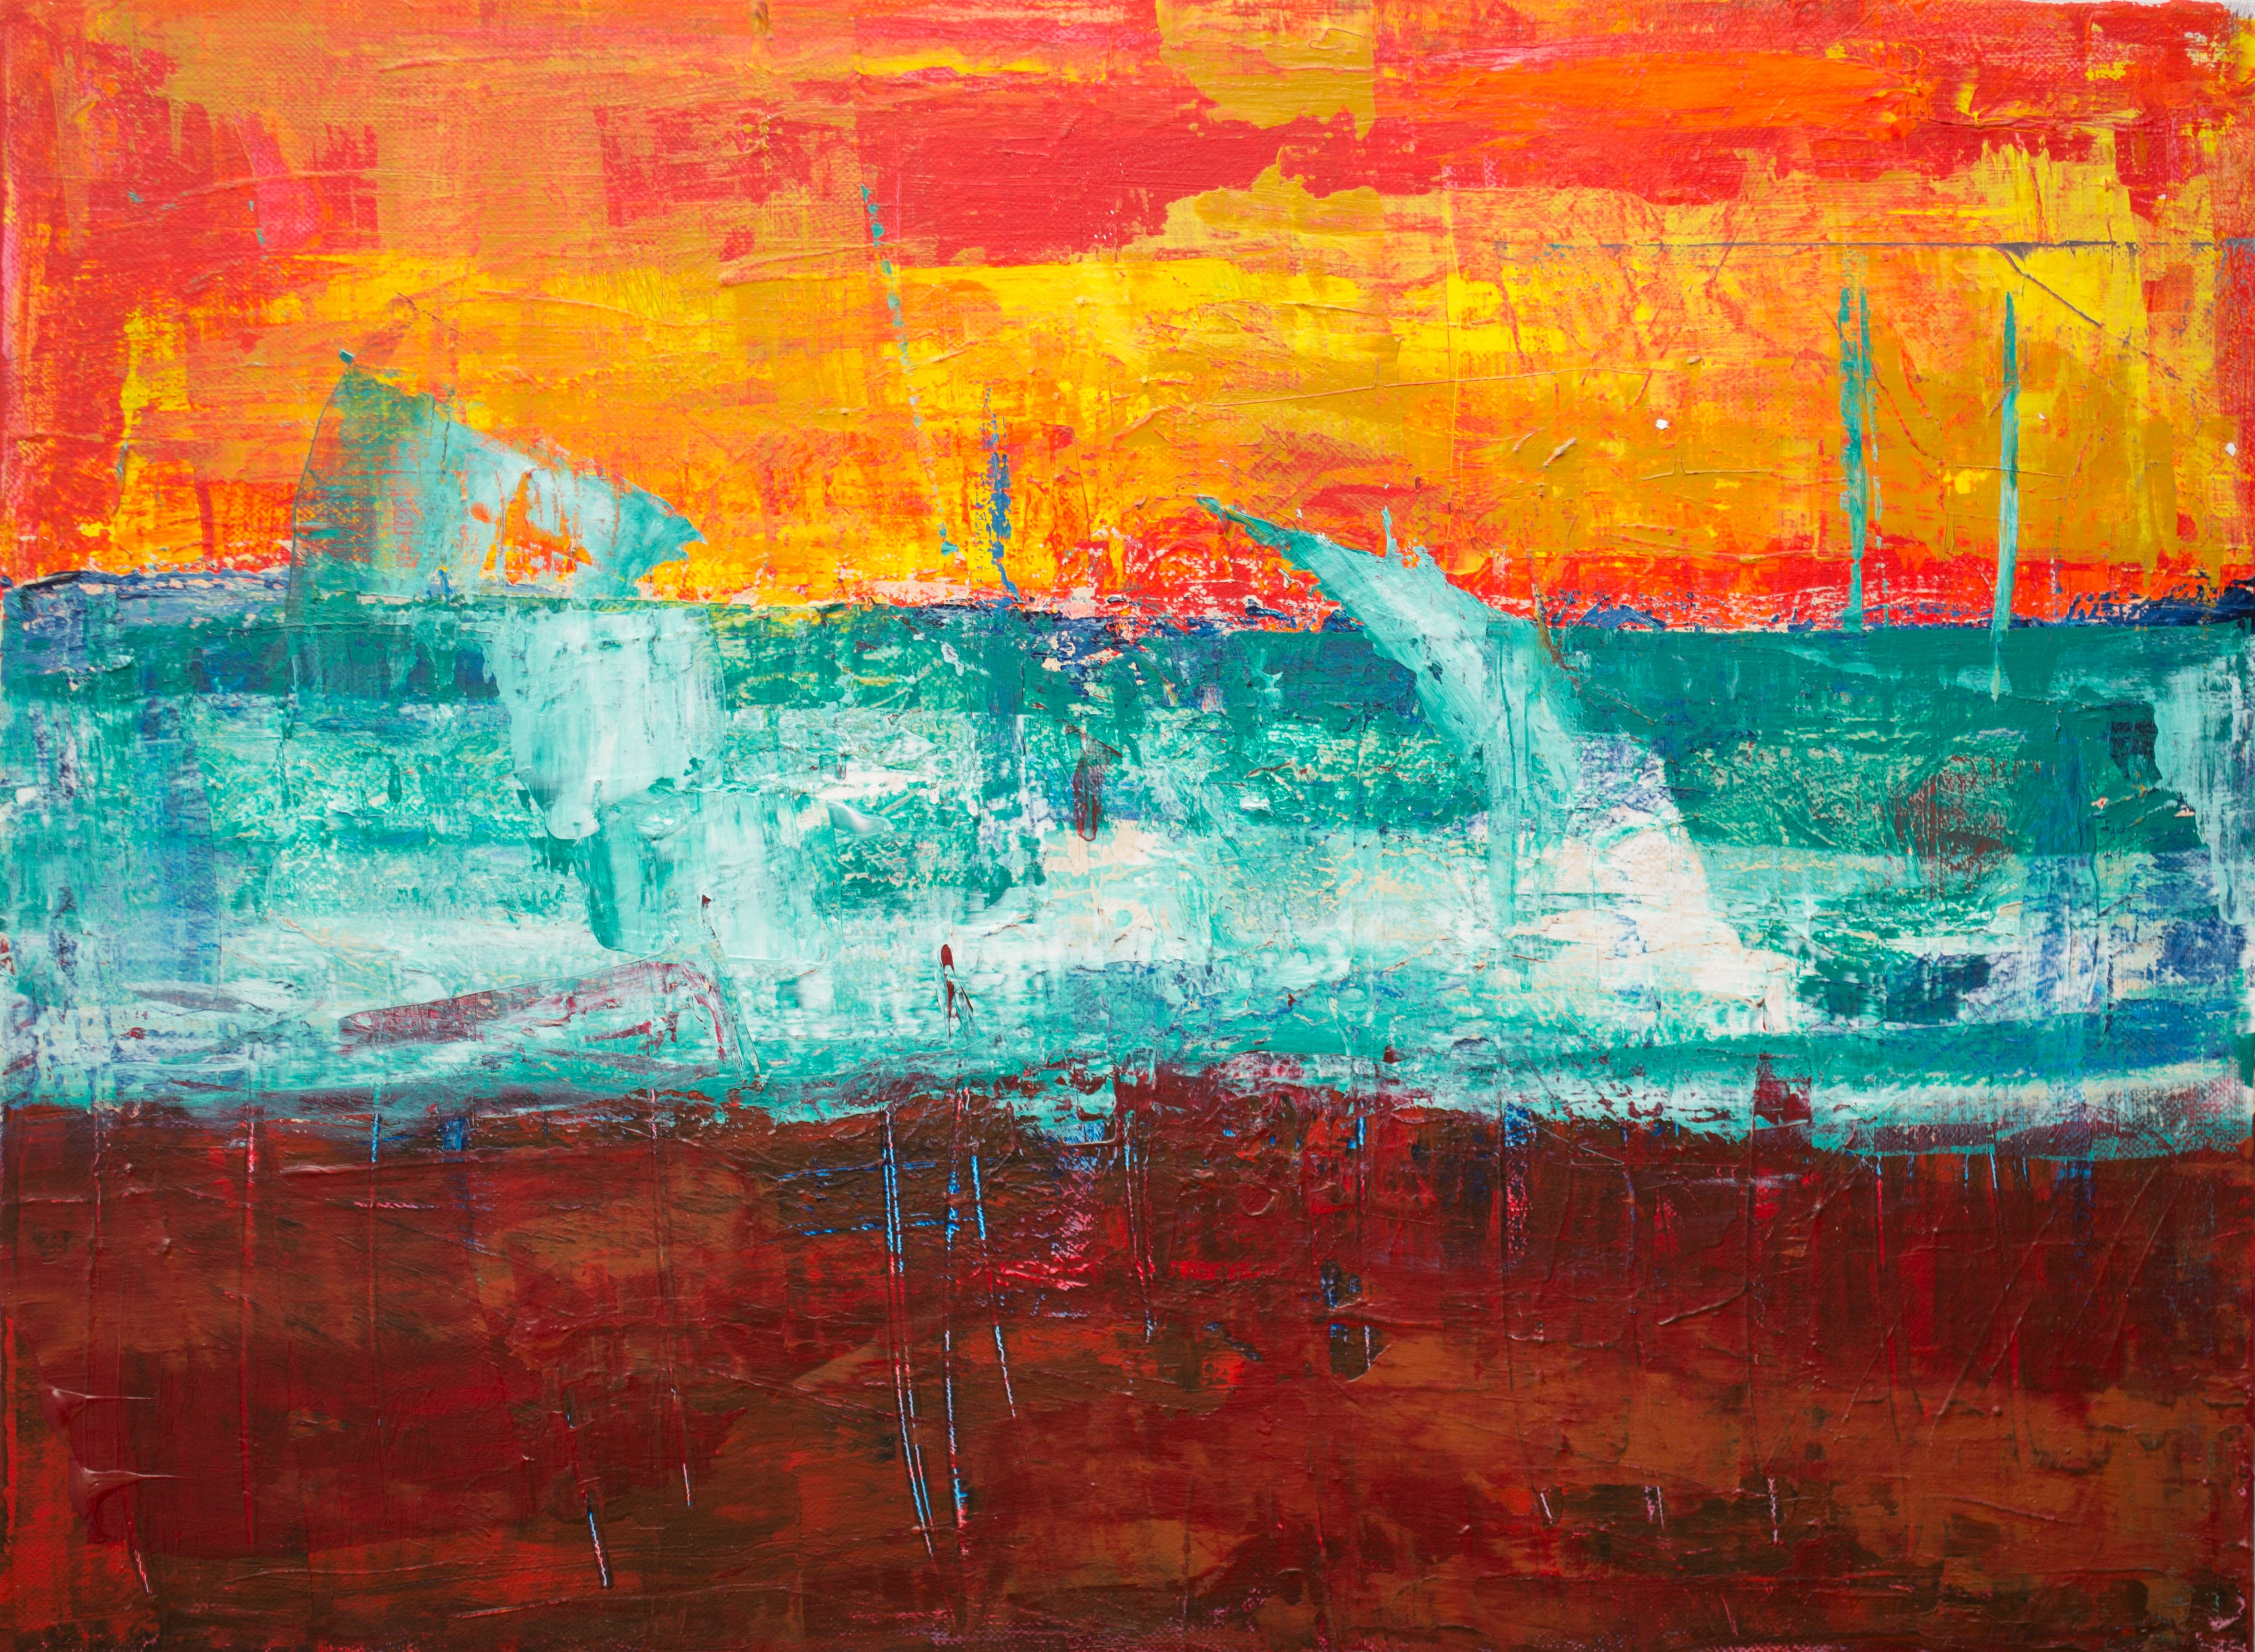 teal, orange, and red abstract painting